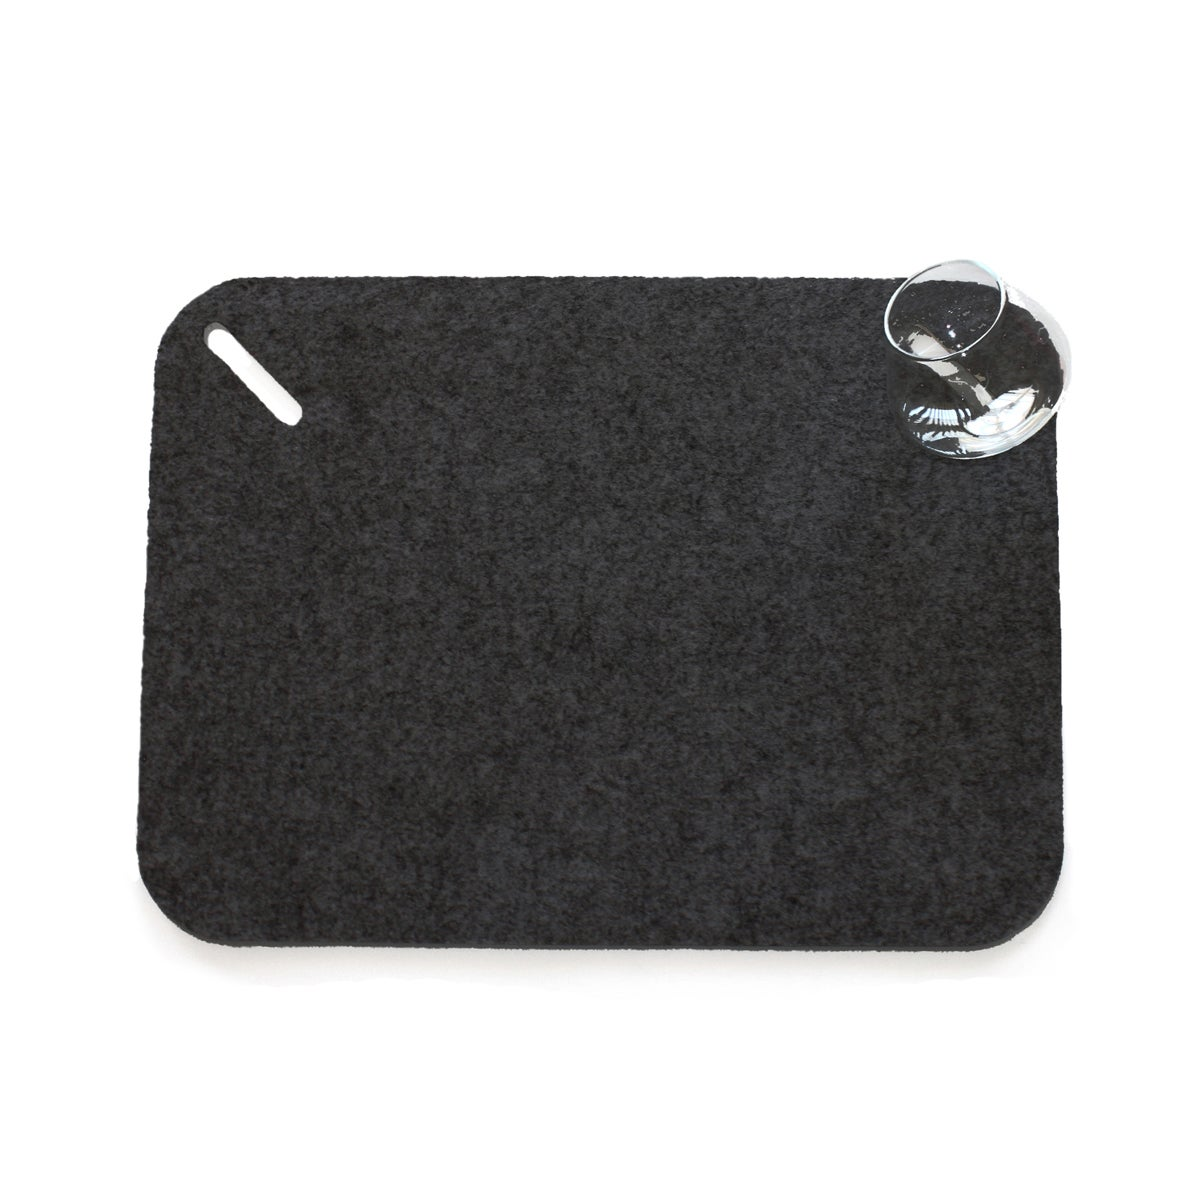 Image of Cupa-Place Black Placemats